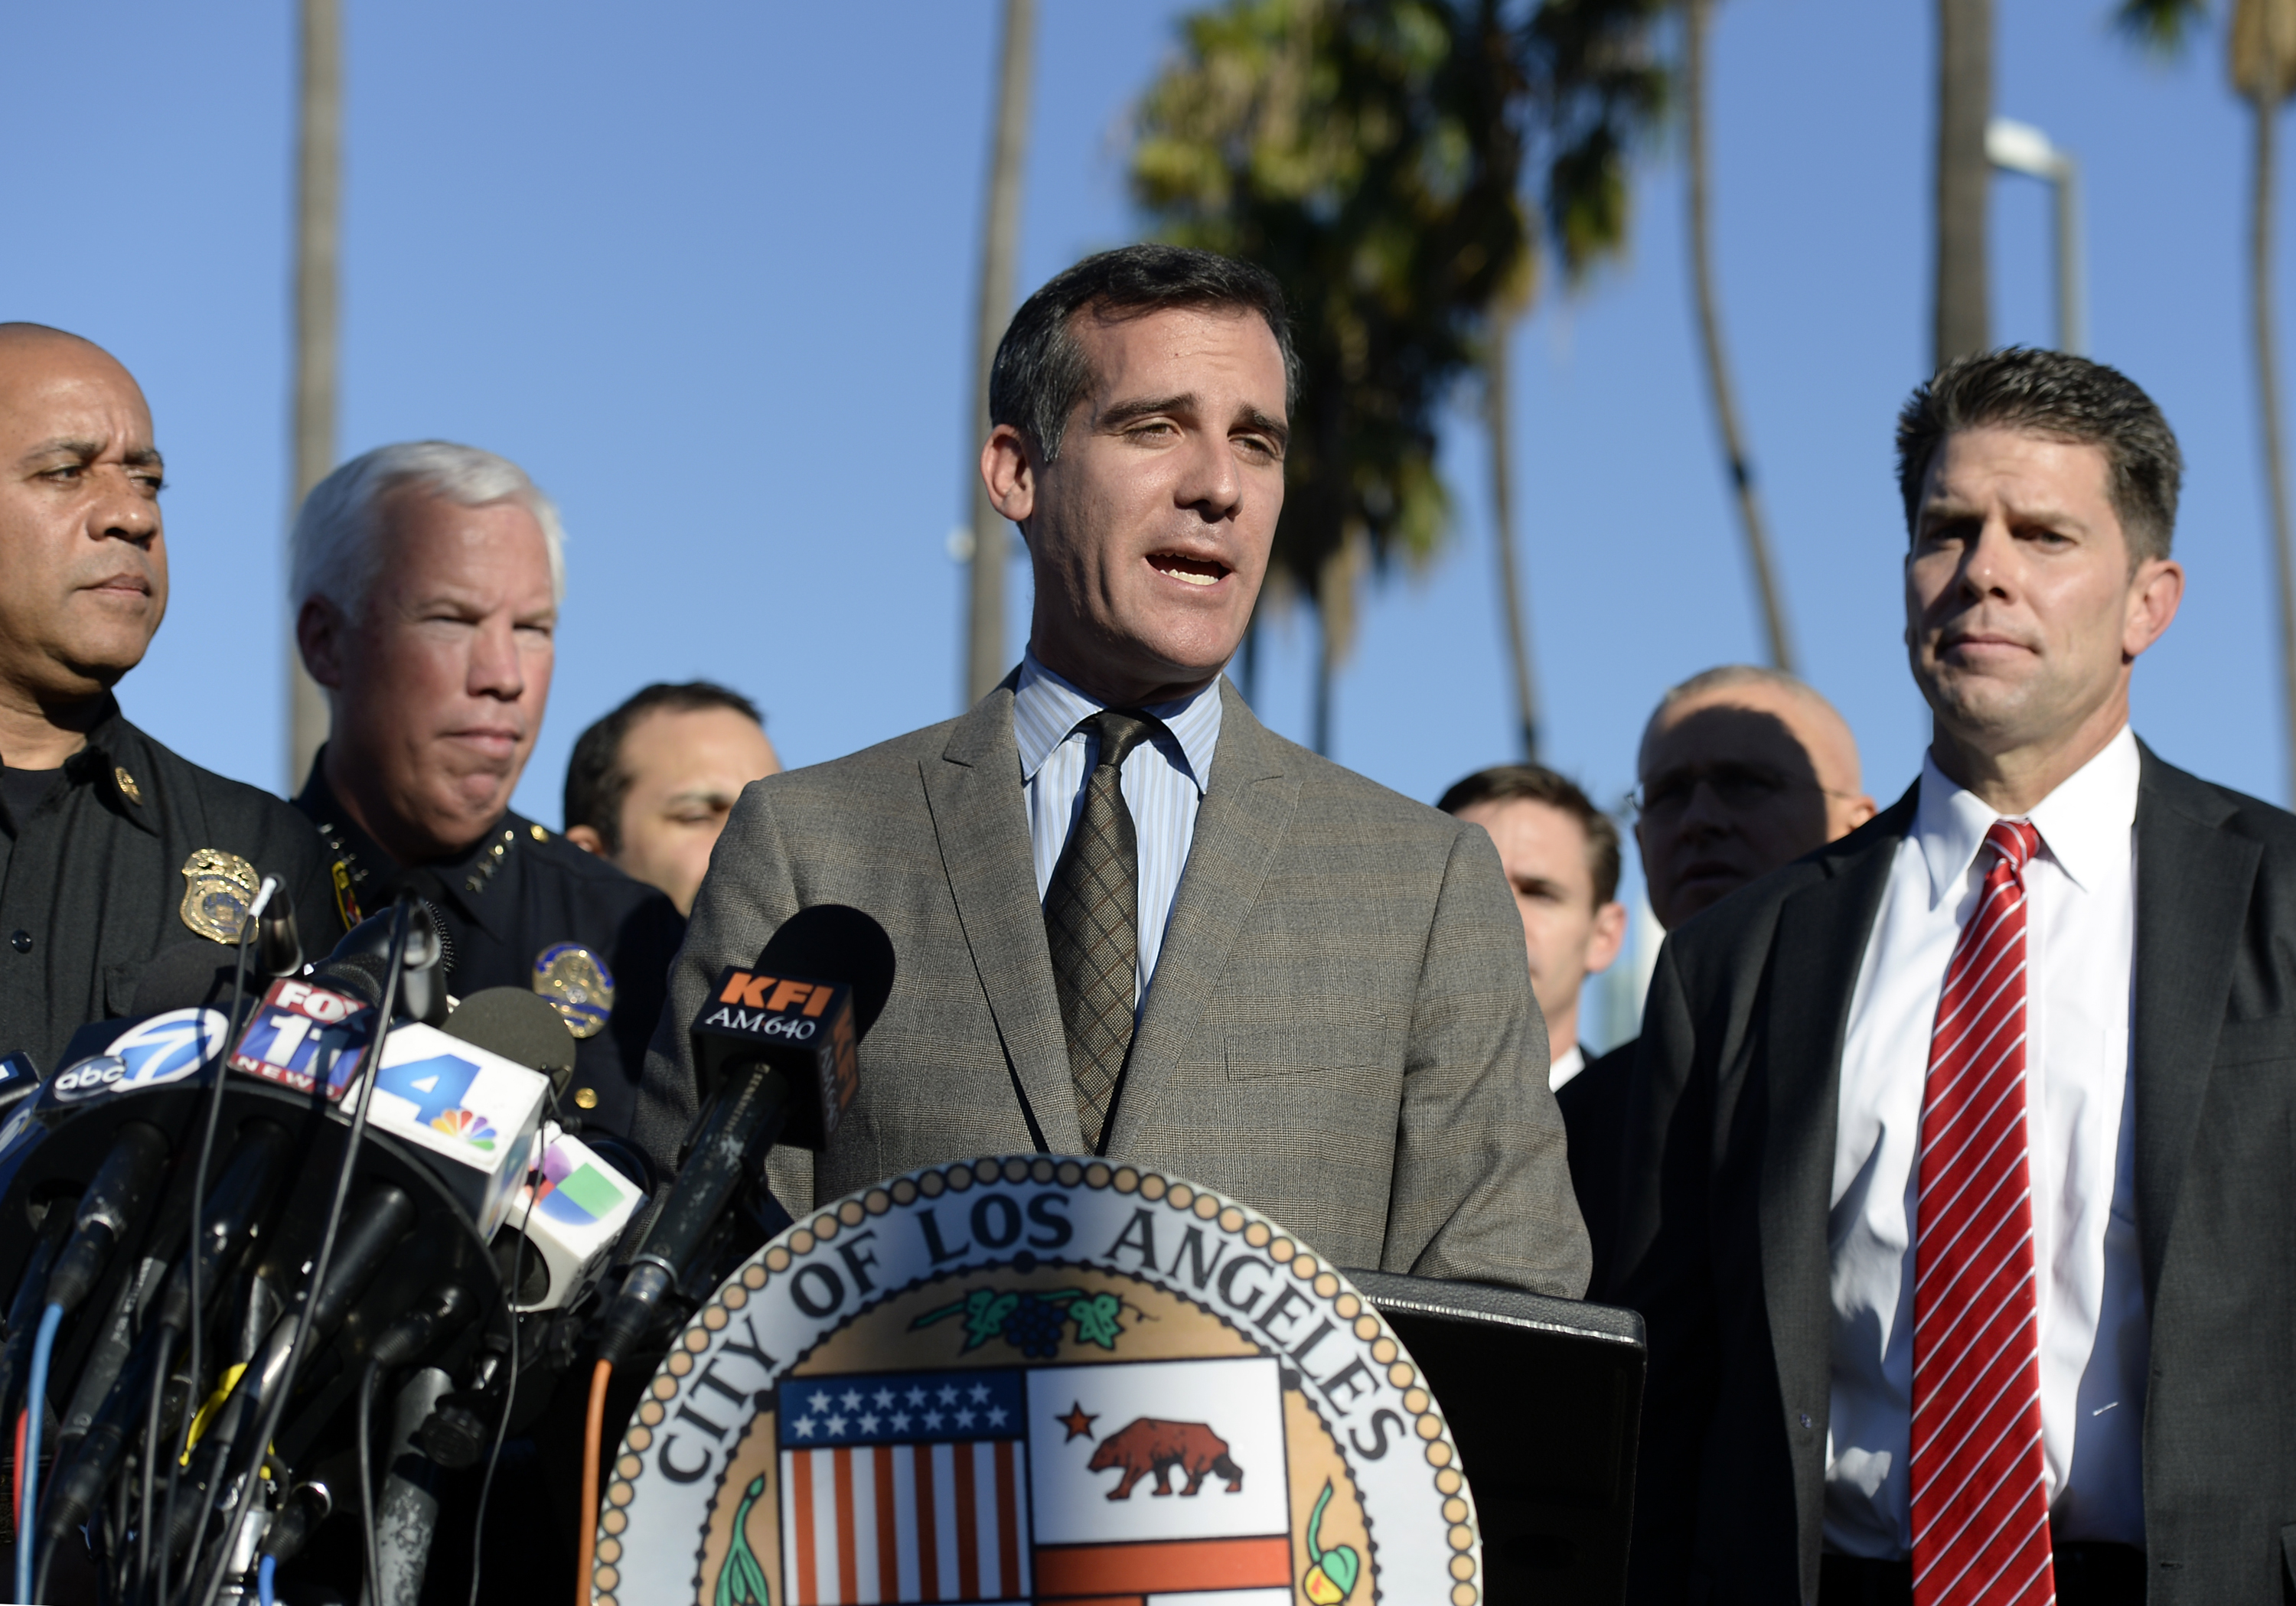 Los Angeles Mayor Eric Garcetti speaks during a news conference at Los Angeles International Airport (LAX) after a shooting November 1, 2013 in Los Angeles, California. (Photo by Kevork Djansezian/Getty Images)